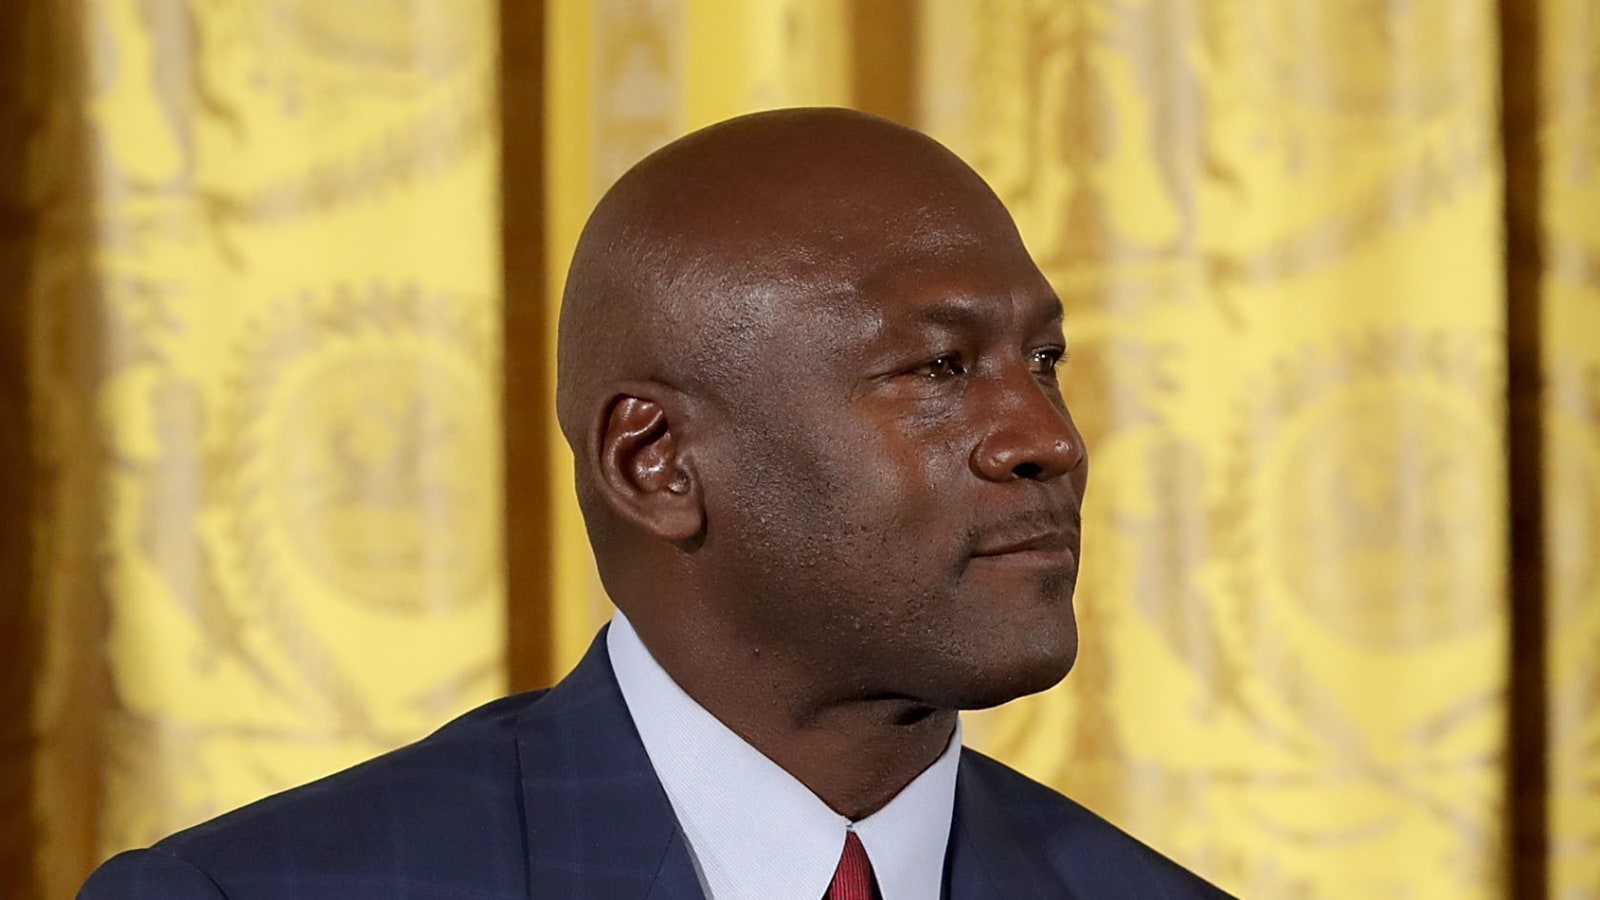 Michael Jordan Makes Multi-Million Dollar Investment to Non-Profit Mentorship Organization